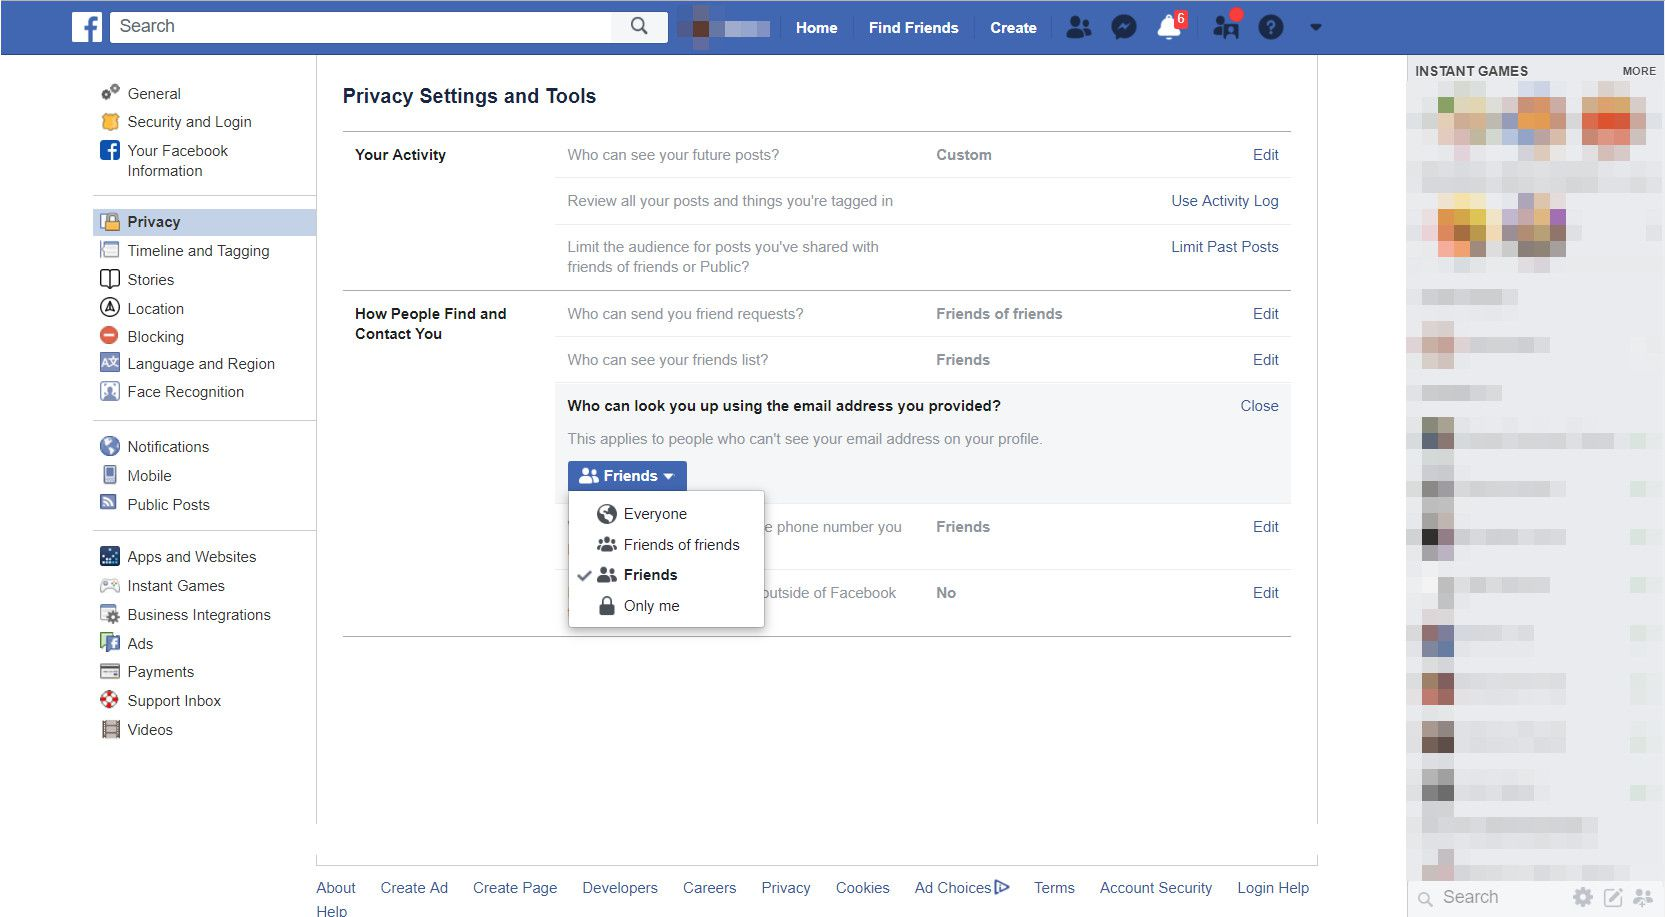 Don't Let Strangers See Your Facebook Profile